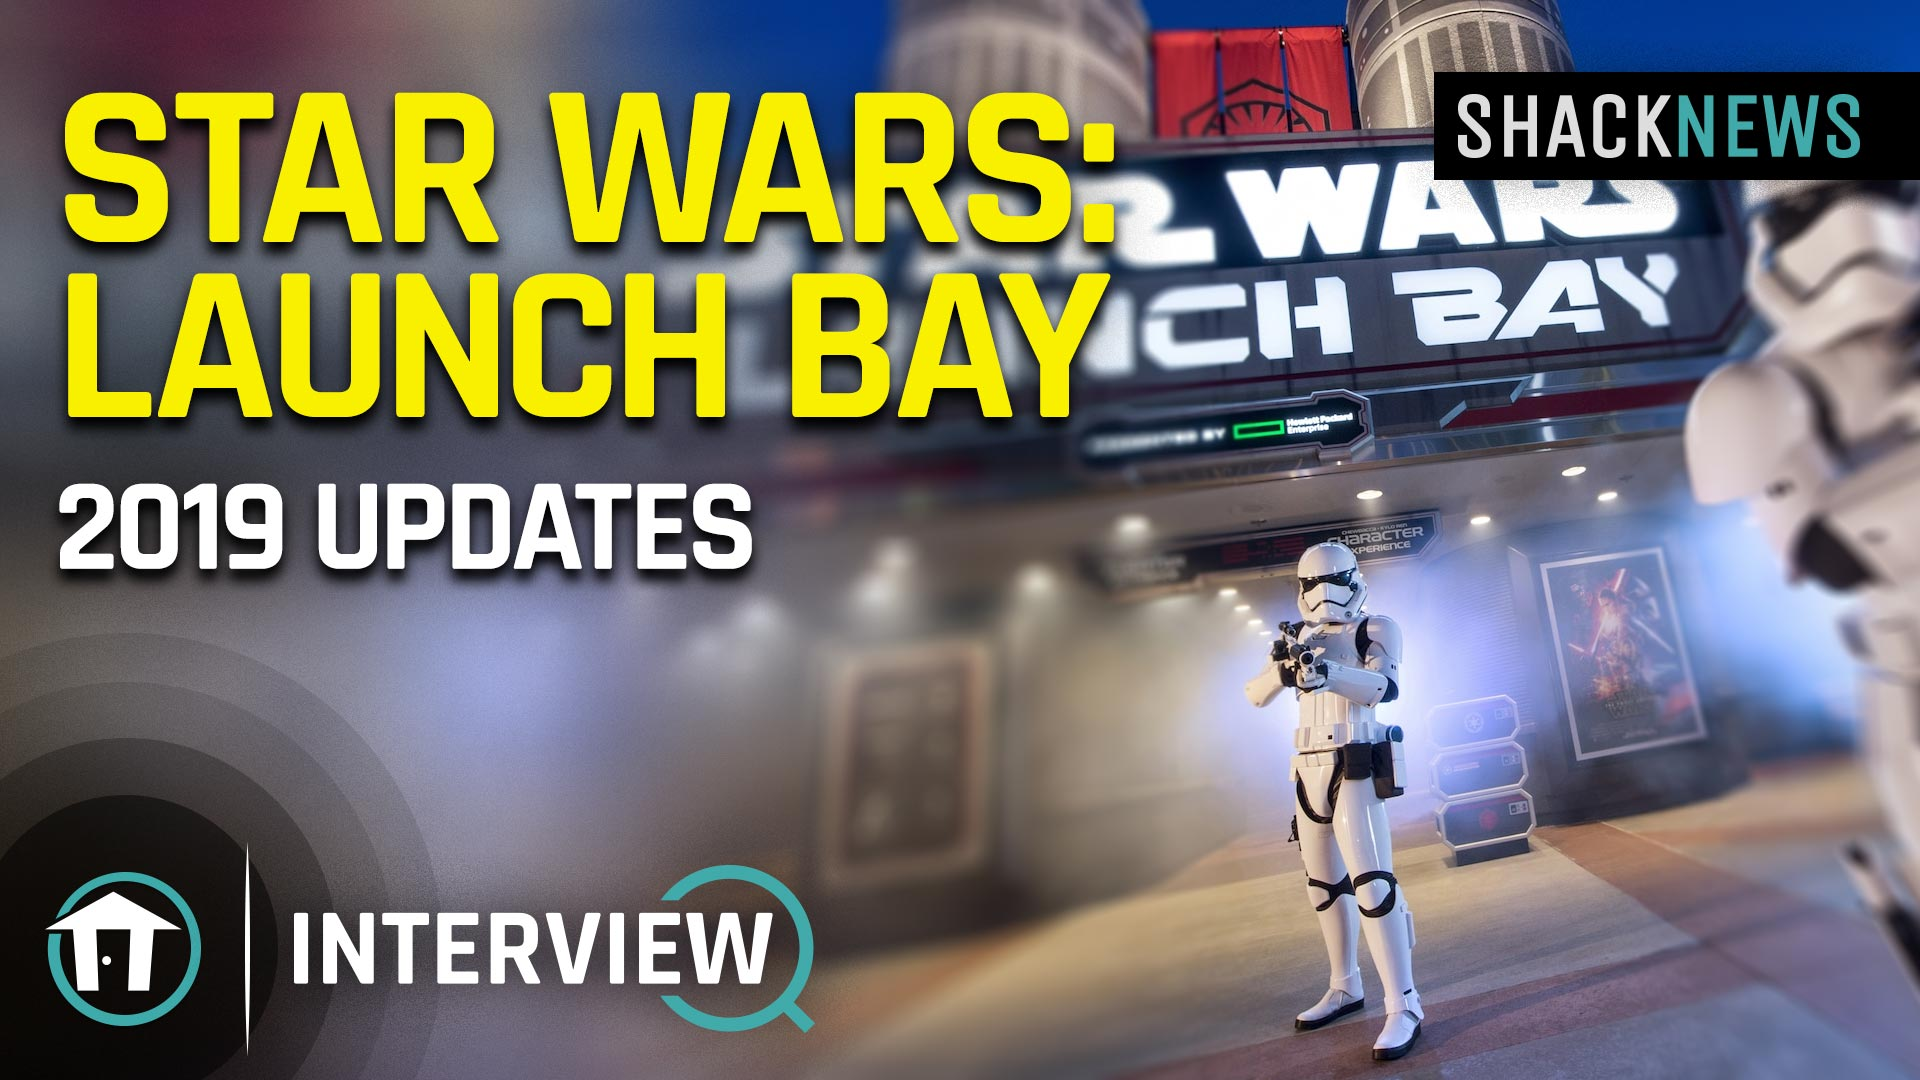 New changes coming to Disney's Star Wars Launch Bay in 2019